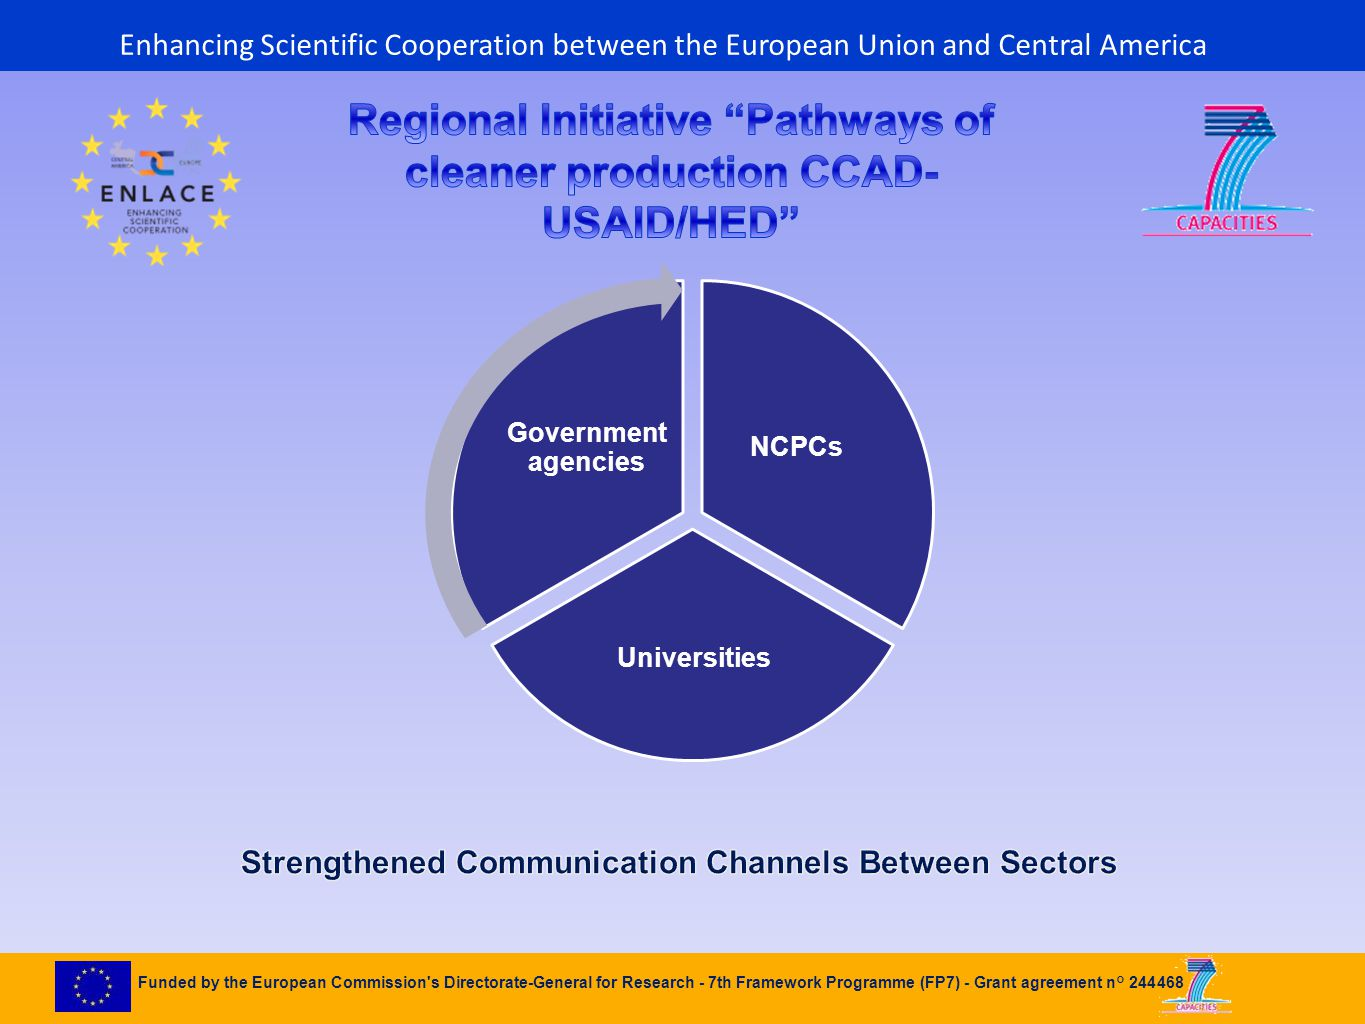 Funded by the European Commission s Directorate-General for Research - 7th Framework Programme (FP7) - Grant agreement n° 244468 NCPCs Universities Government agencies Enhancing Scientific Cooperation between the European Union and Central America